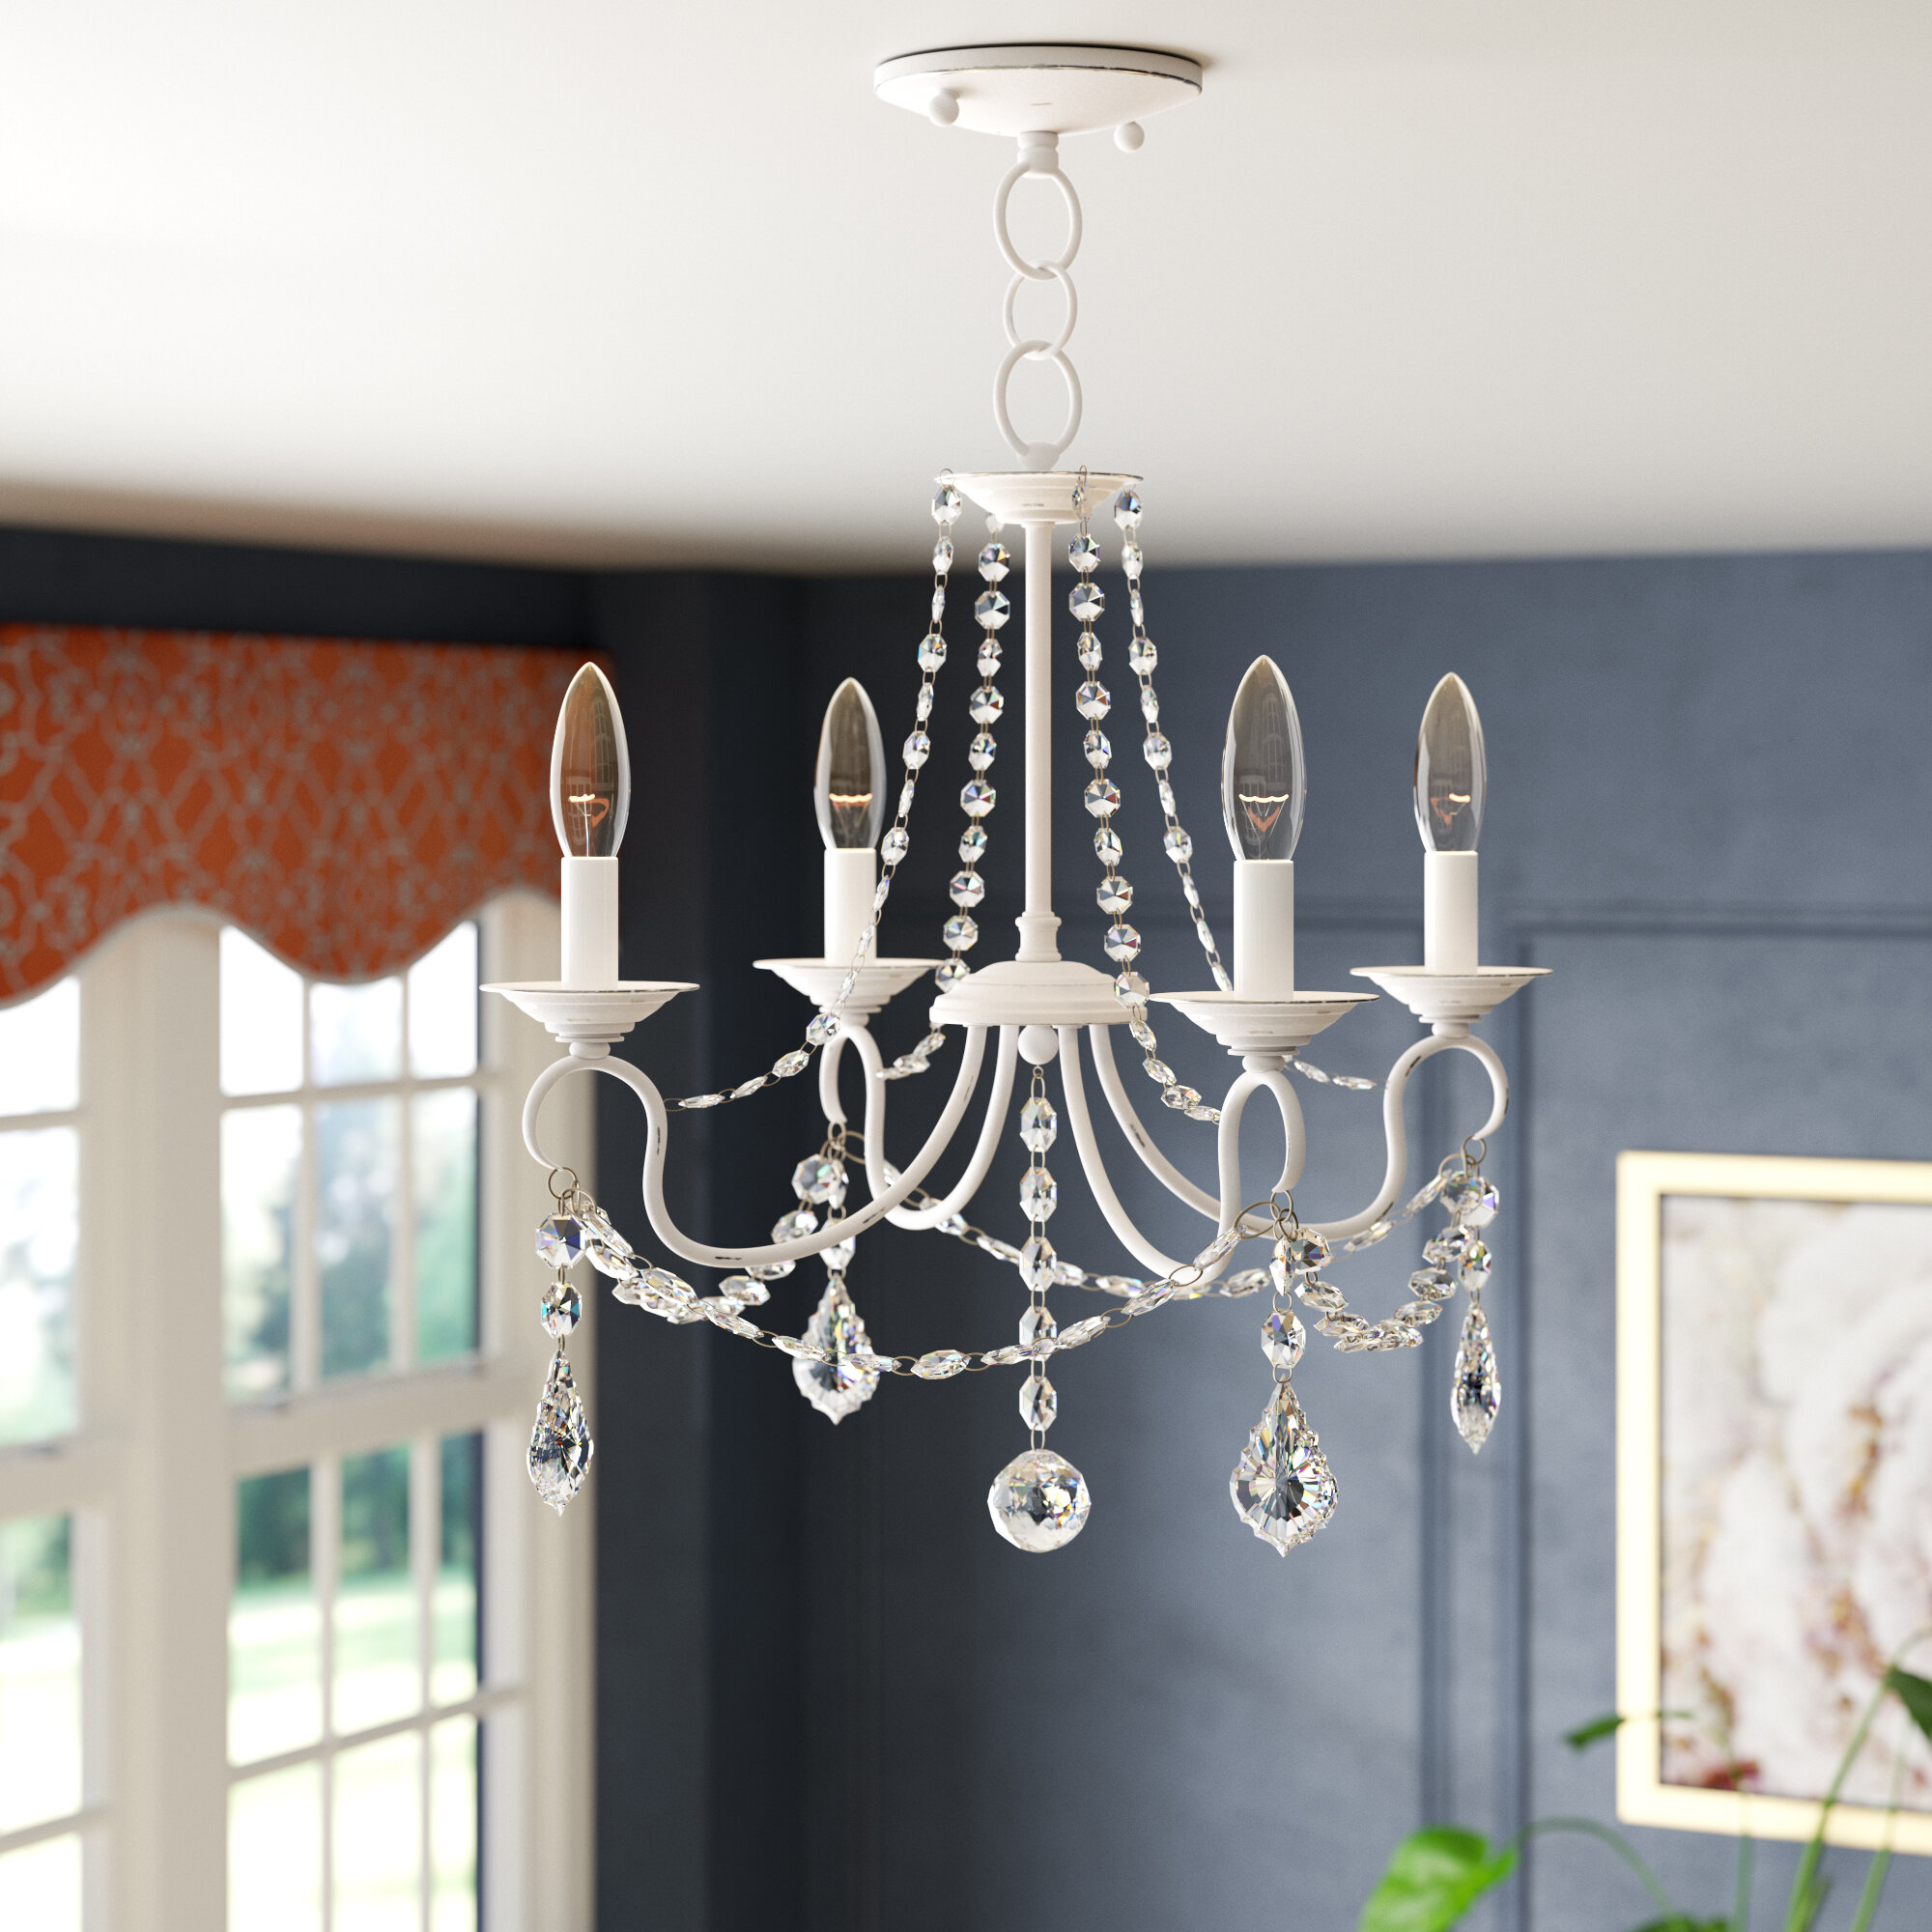 Willa arlo interiors devana 4 light candle style chandelier reviews wayfair